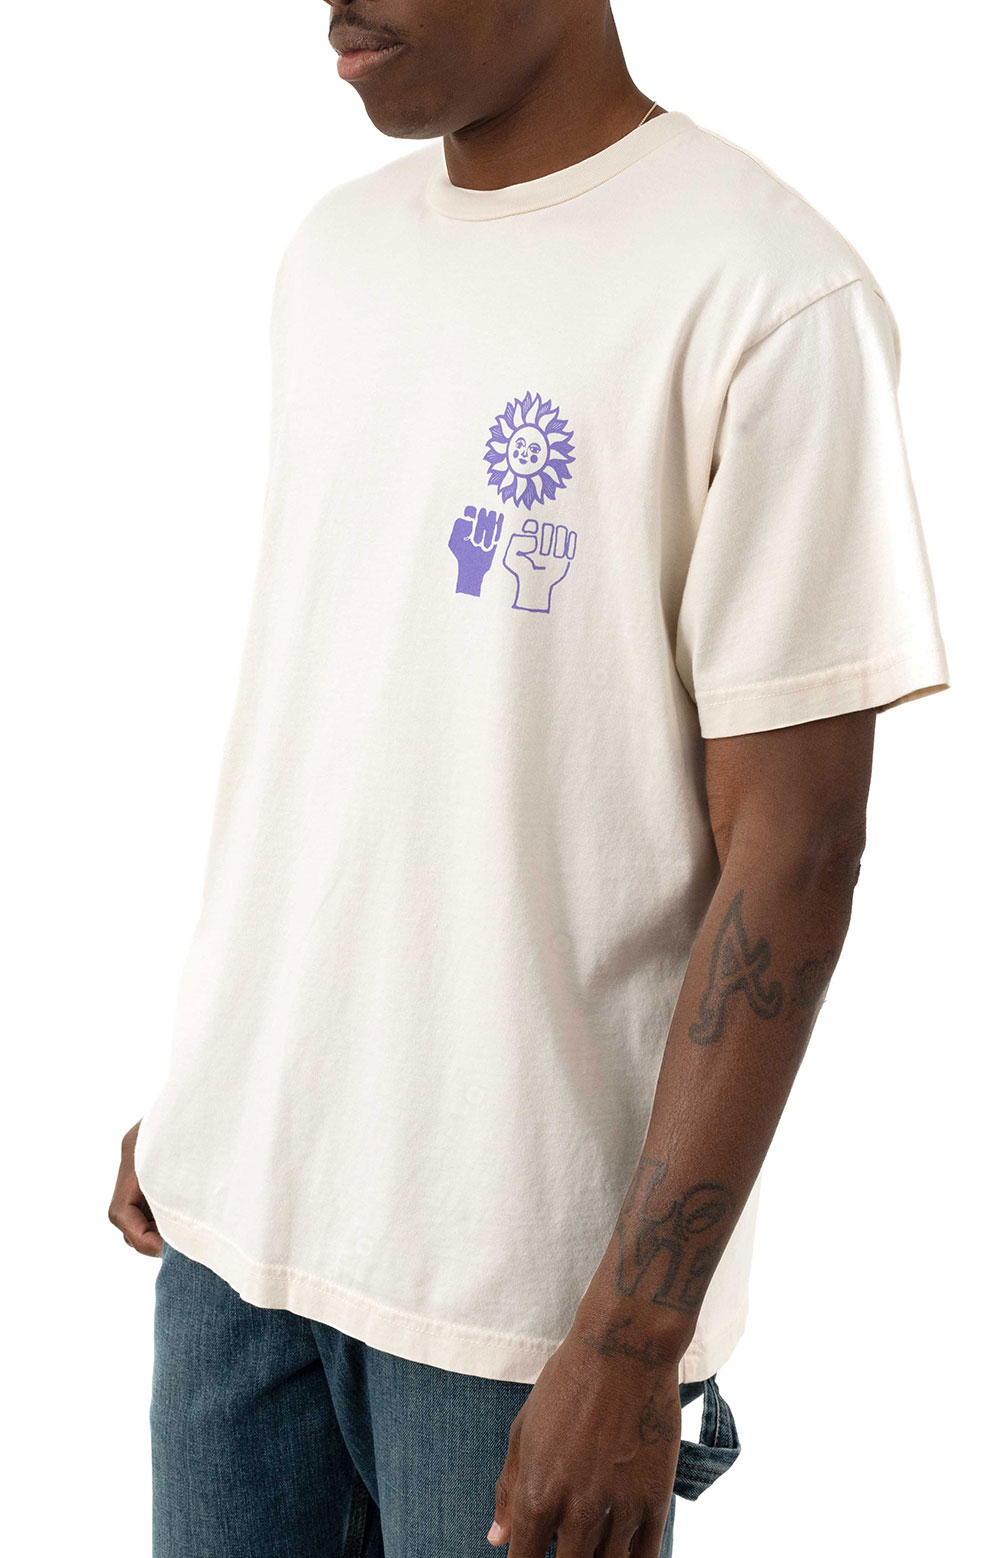 Peace Justice Equality T-Shirt - Sago 2